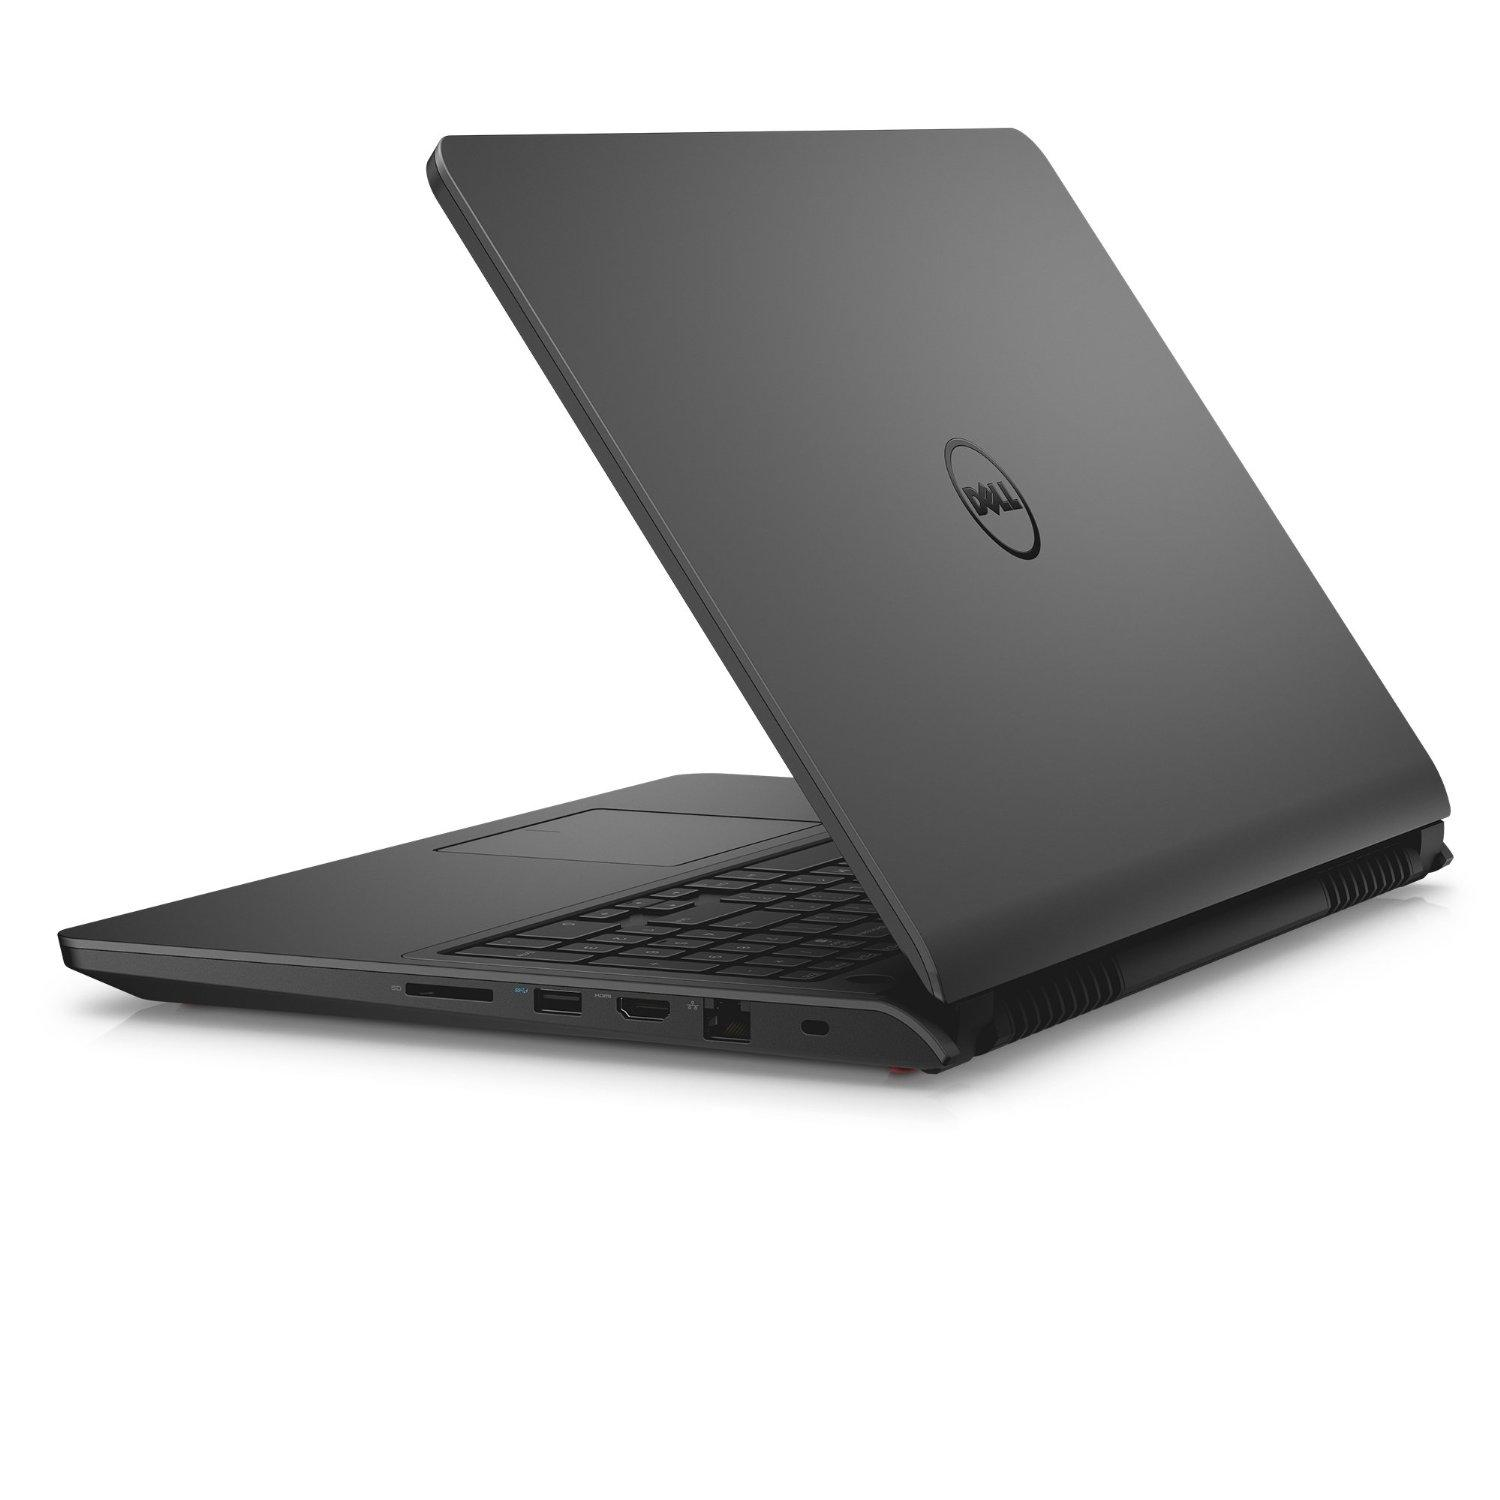 Dell Inspiron 15 7000 I7559-3762GRY Touchscreen Laptop (i5 6300, 8 GB, 1 TB + 8 GB SSHD, 960M)